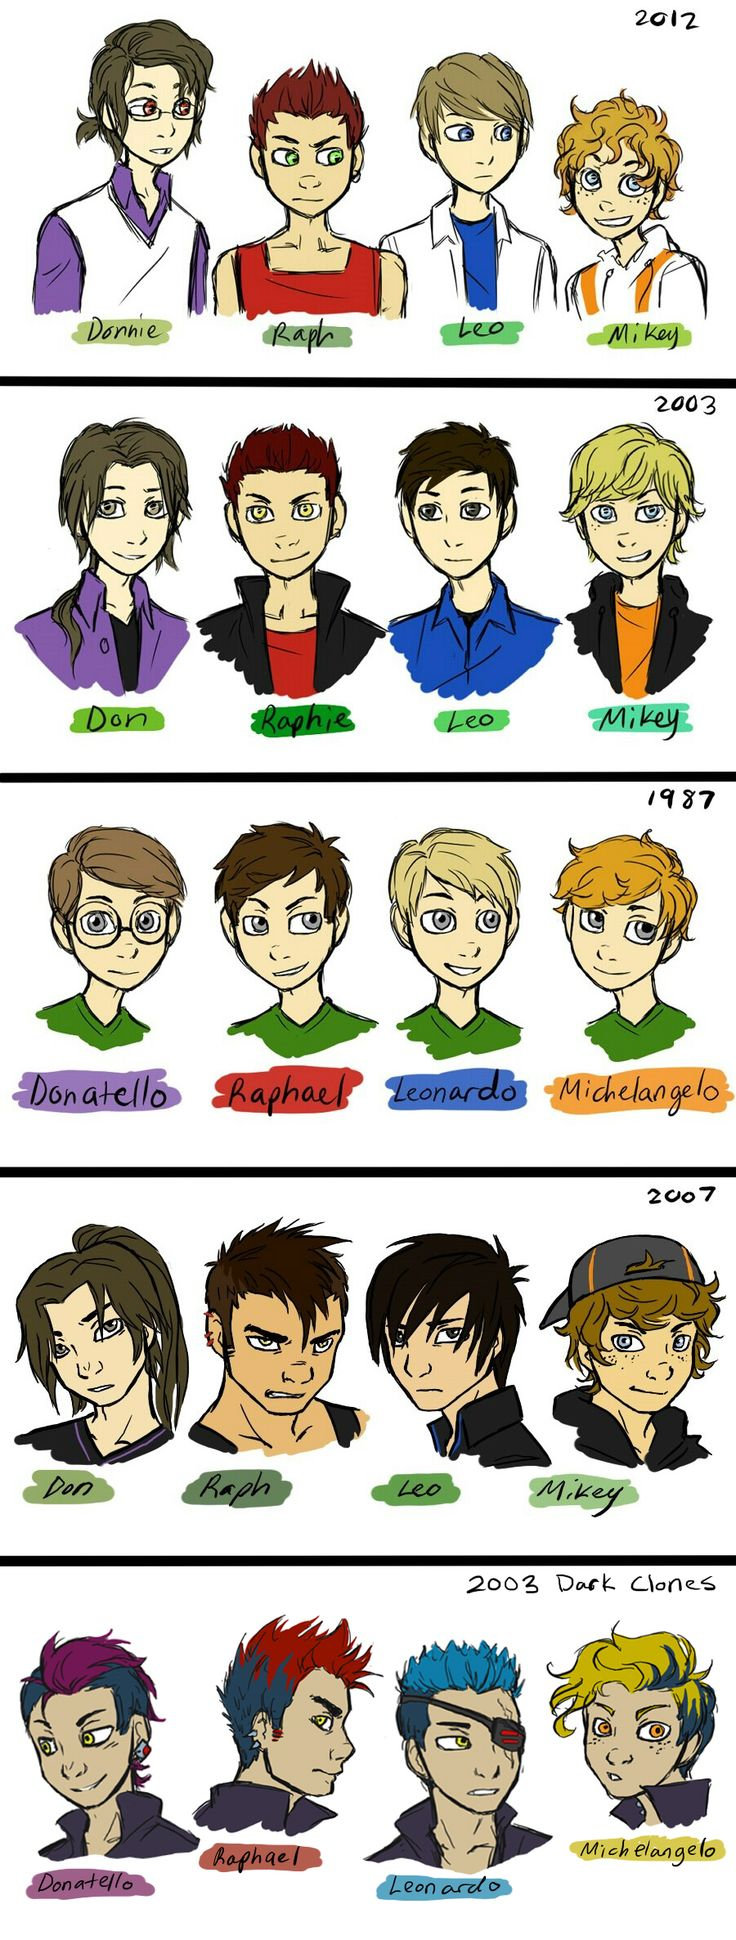 Human Bros x5 by 10yrsy.deviantart.com on @deviantART